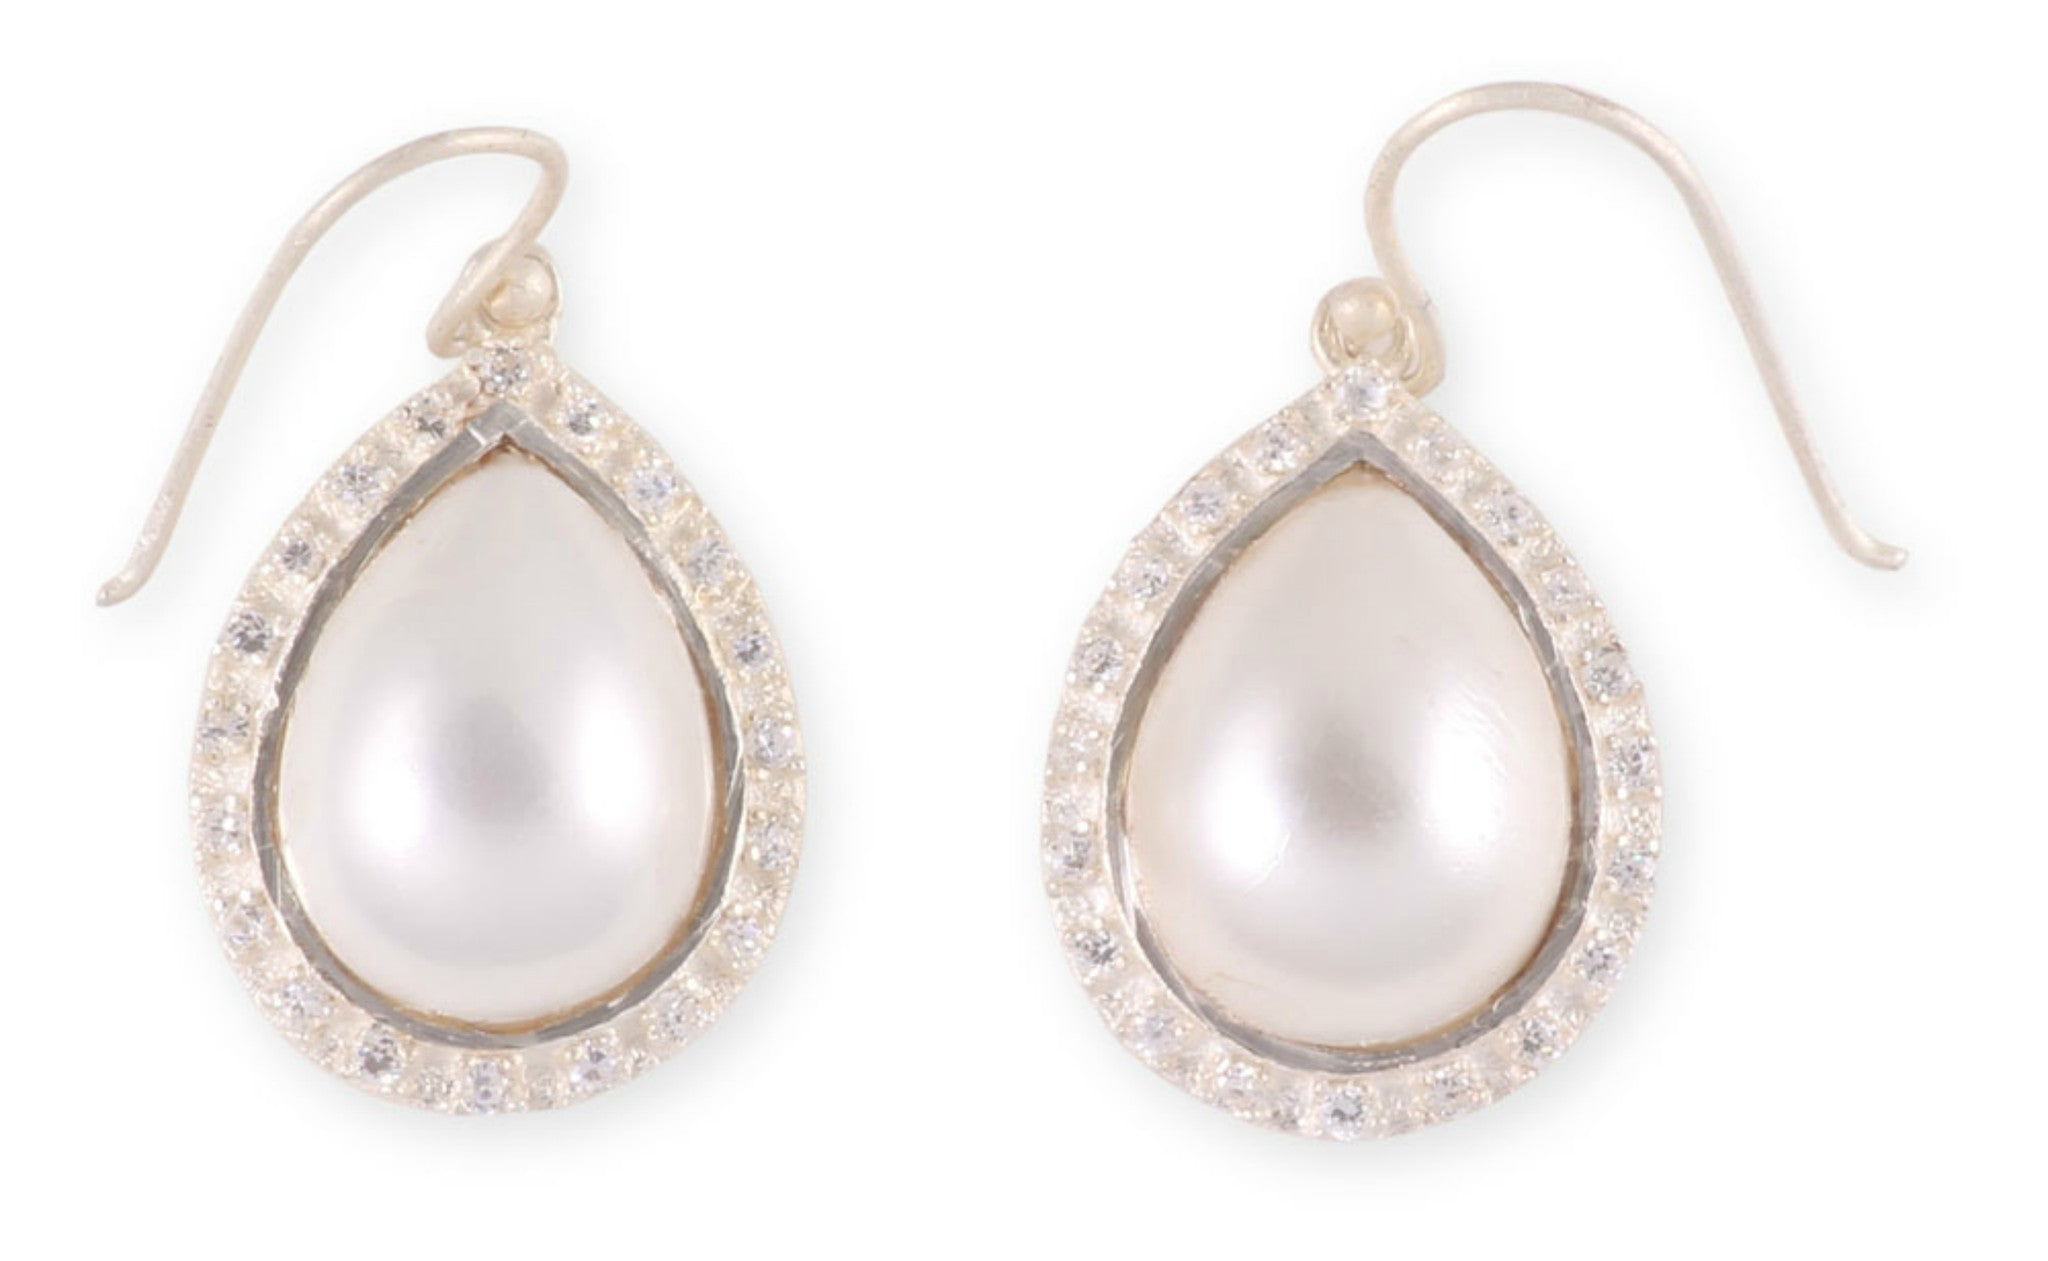 Silver Pearl Drop Earrings with Crystal Surround from the Raindrop Collection